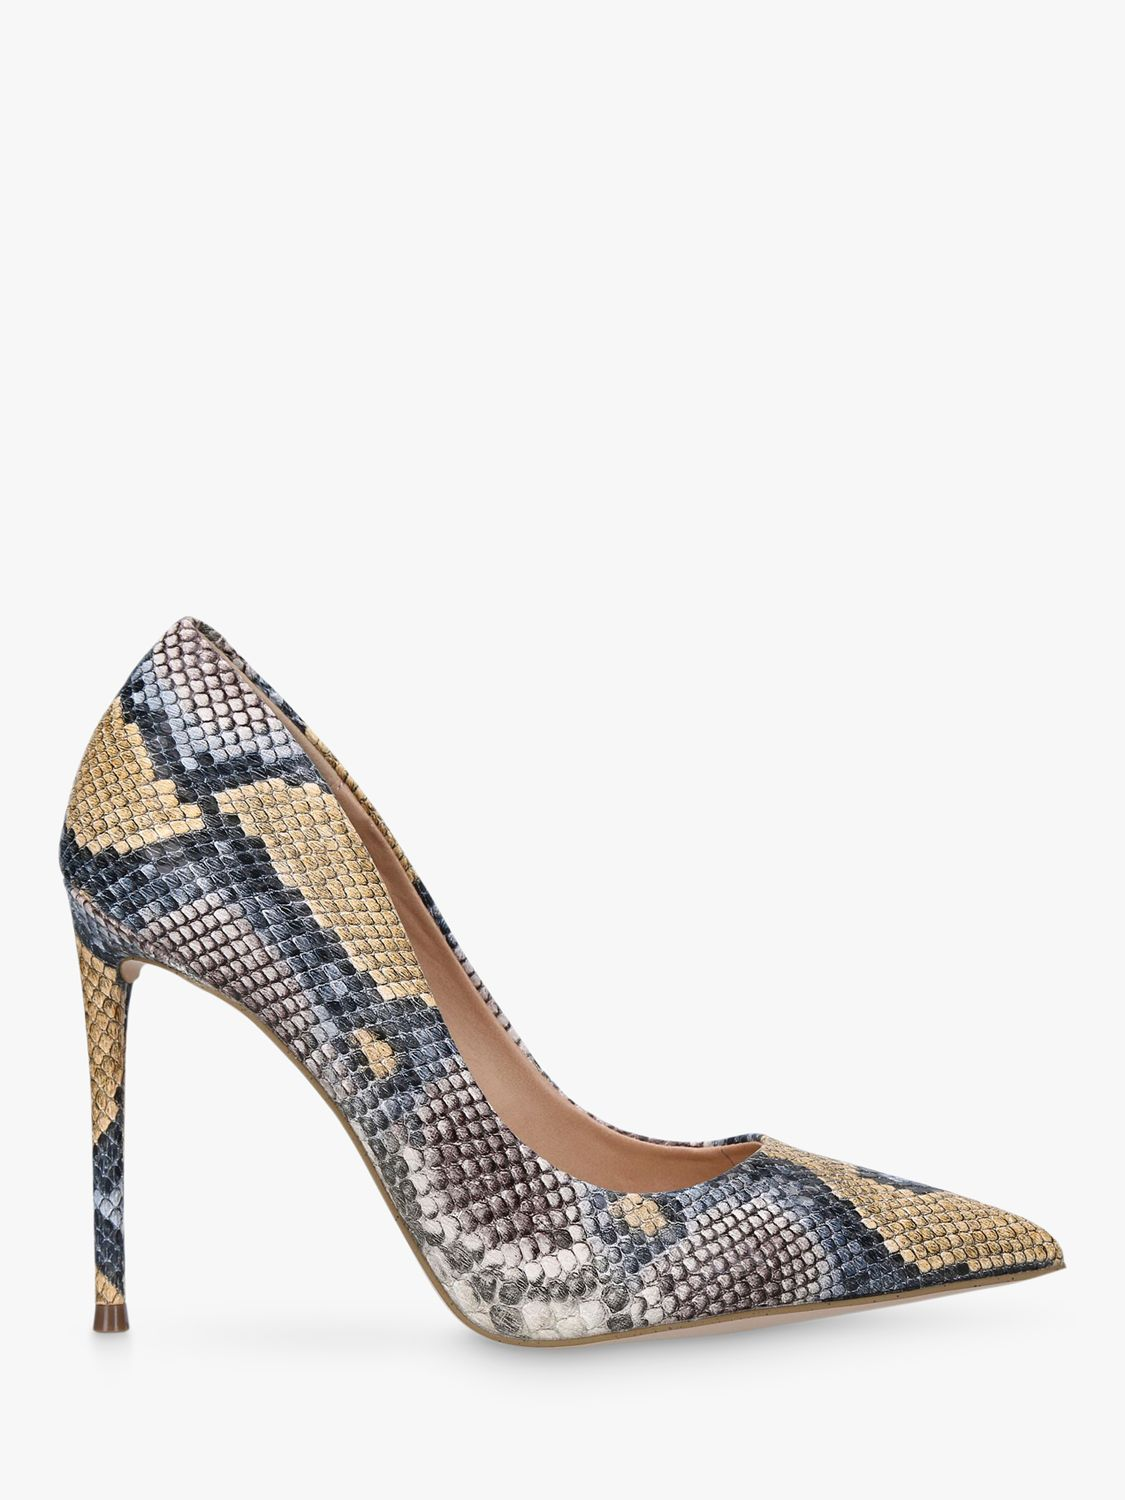 Steve Madden Steve Madden Vala Court Shoes, Snakeprint